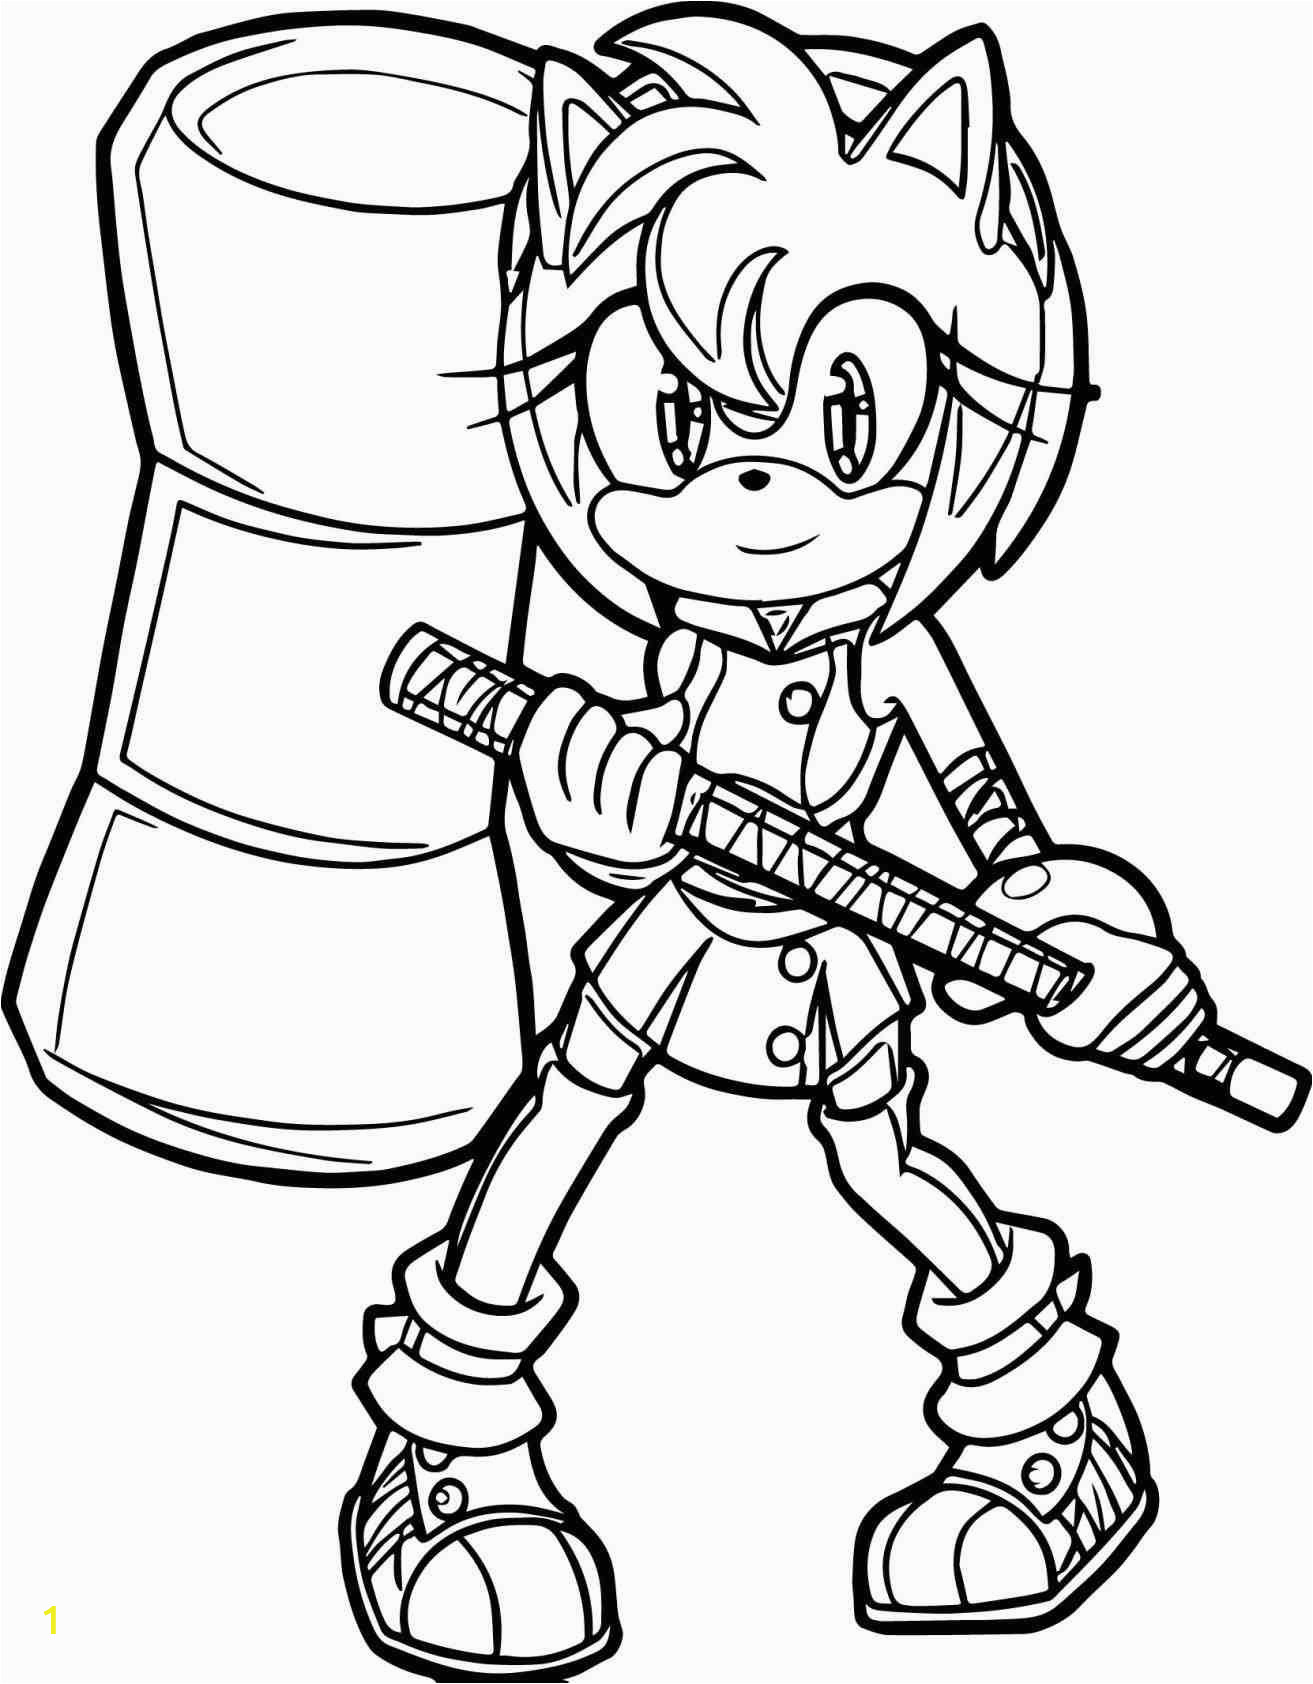 amy sonic coloring pages